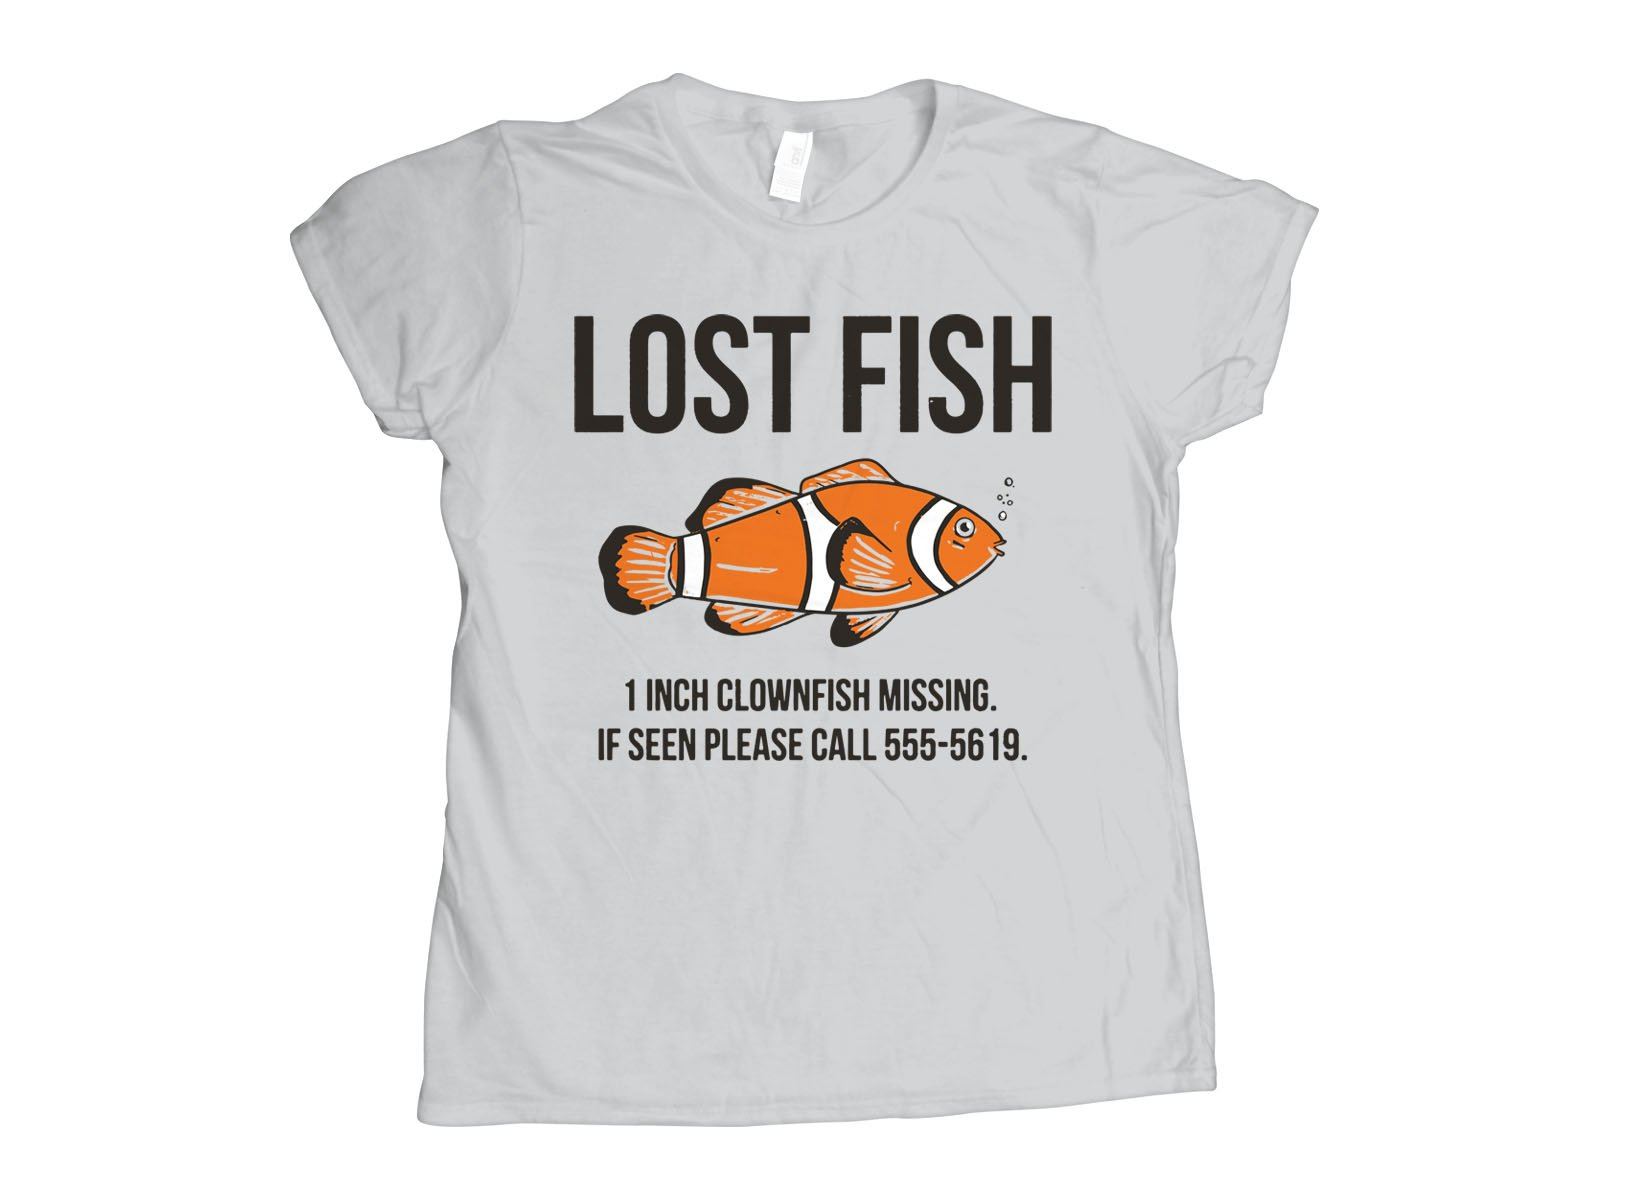 Lost Fish on Womens T-Shirt